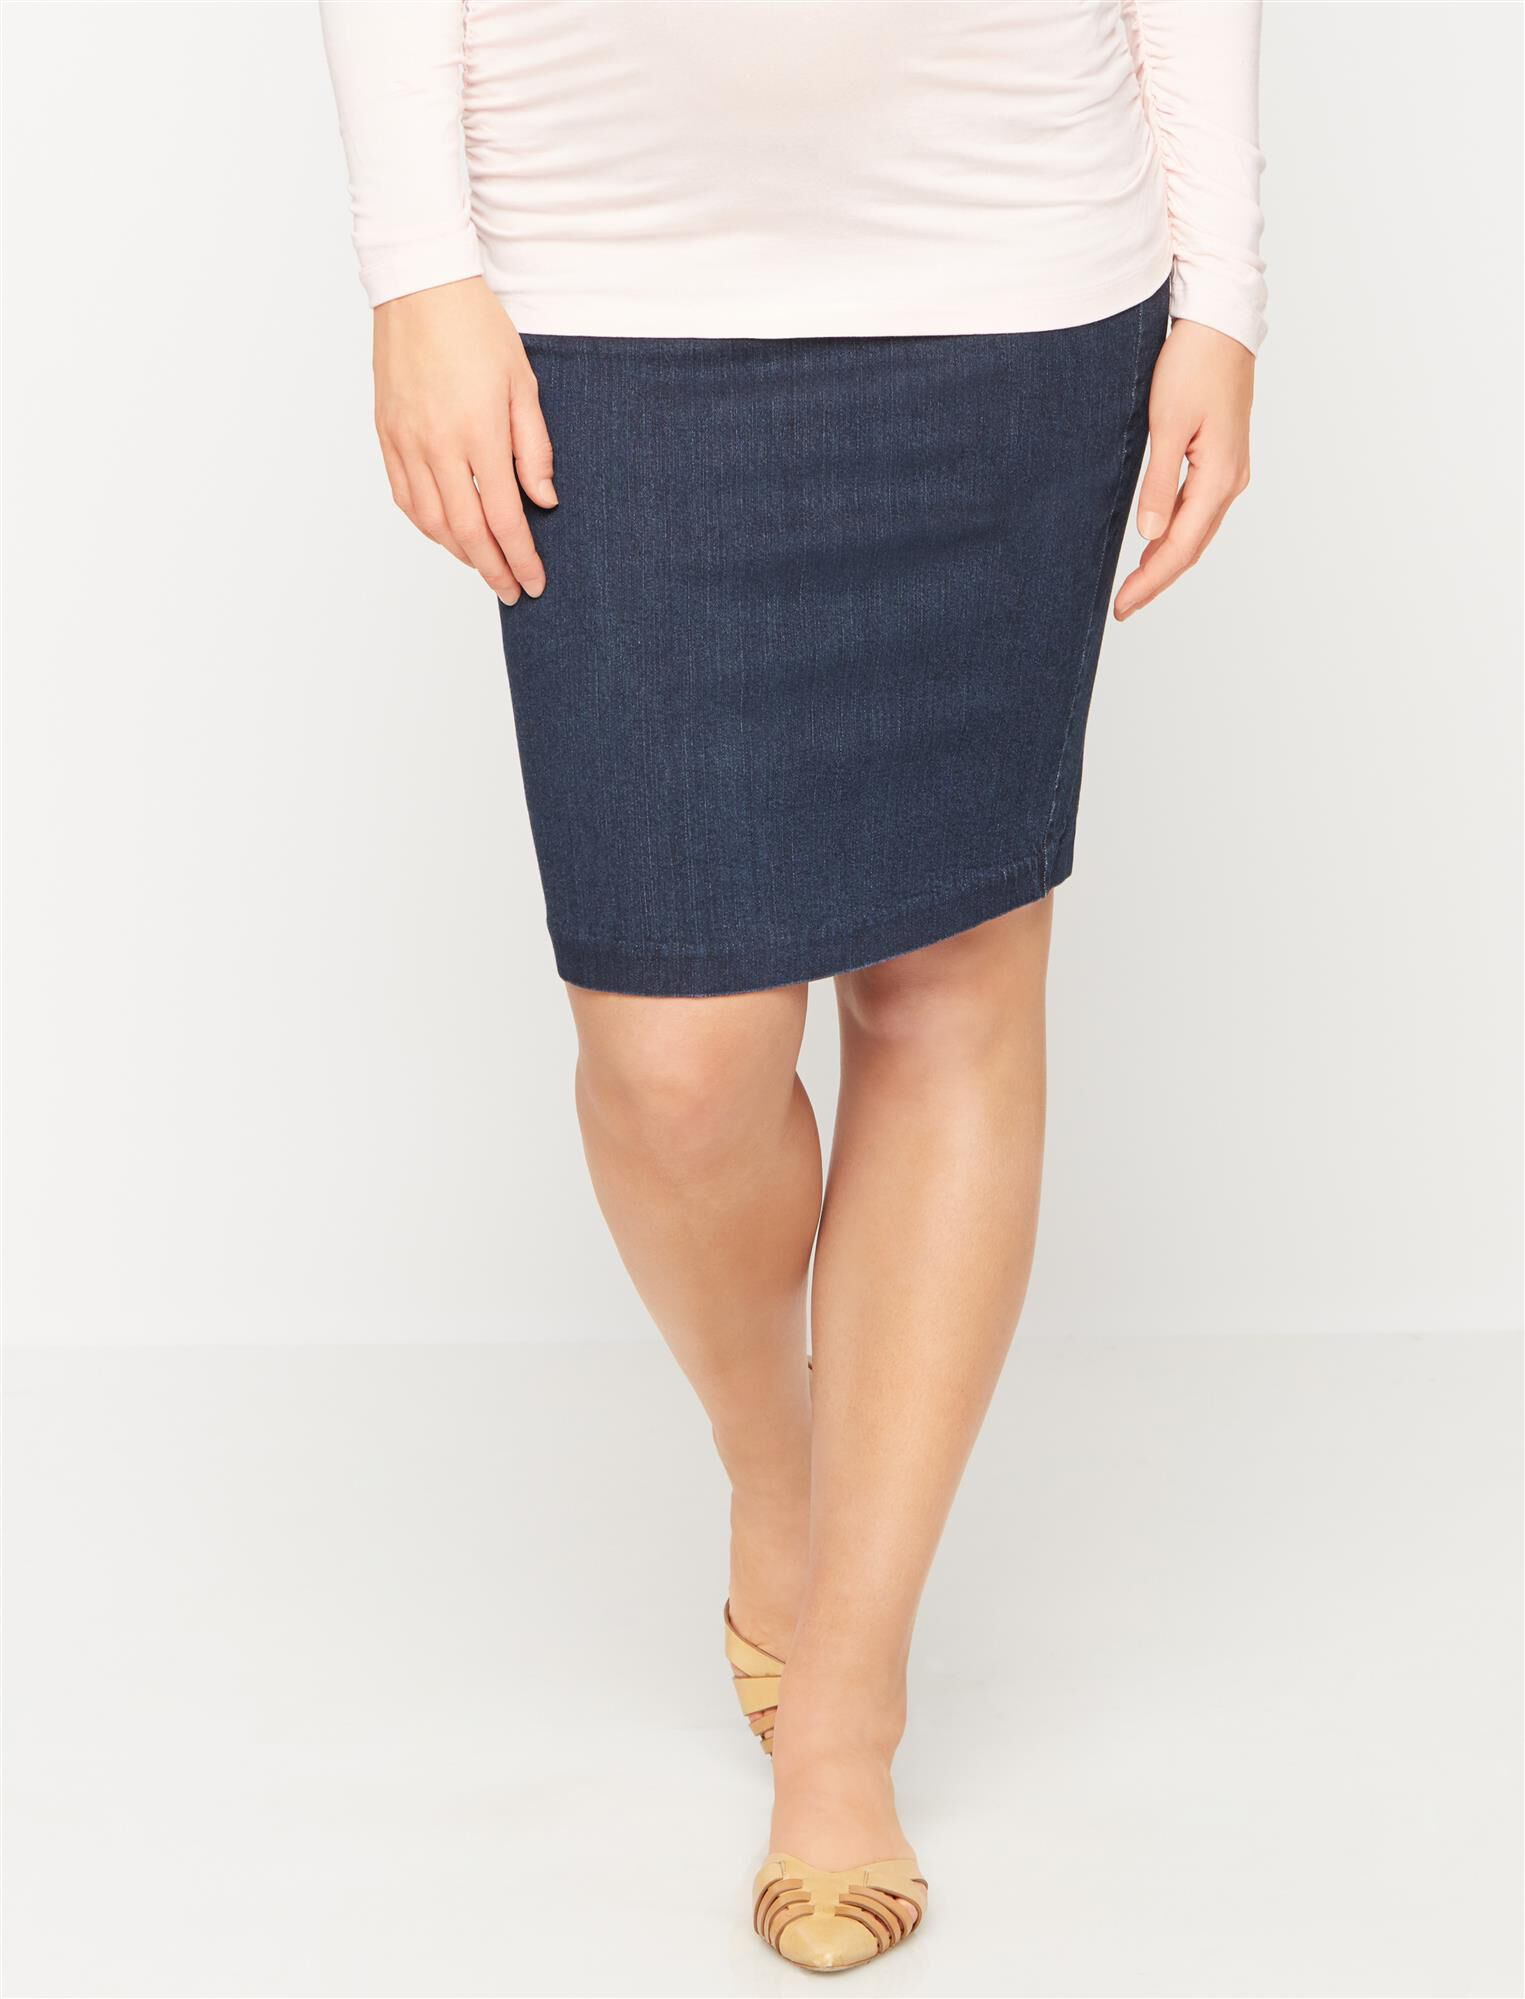 Luxe Essentials Denim Secret Fit Belly Pencil Fit Maternity Skirt